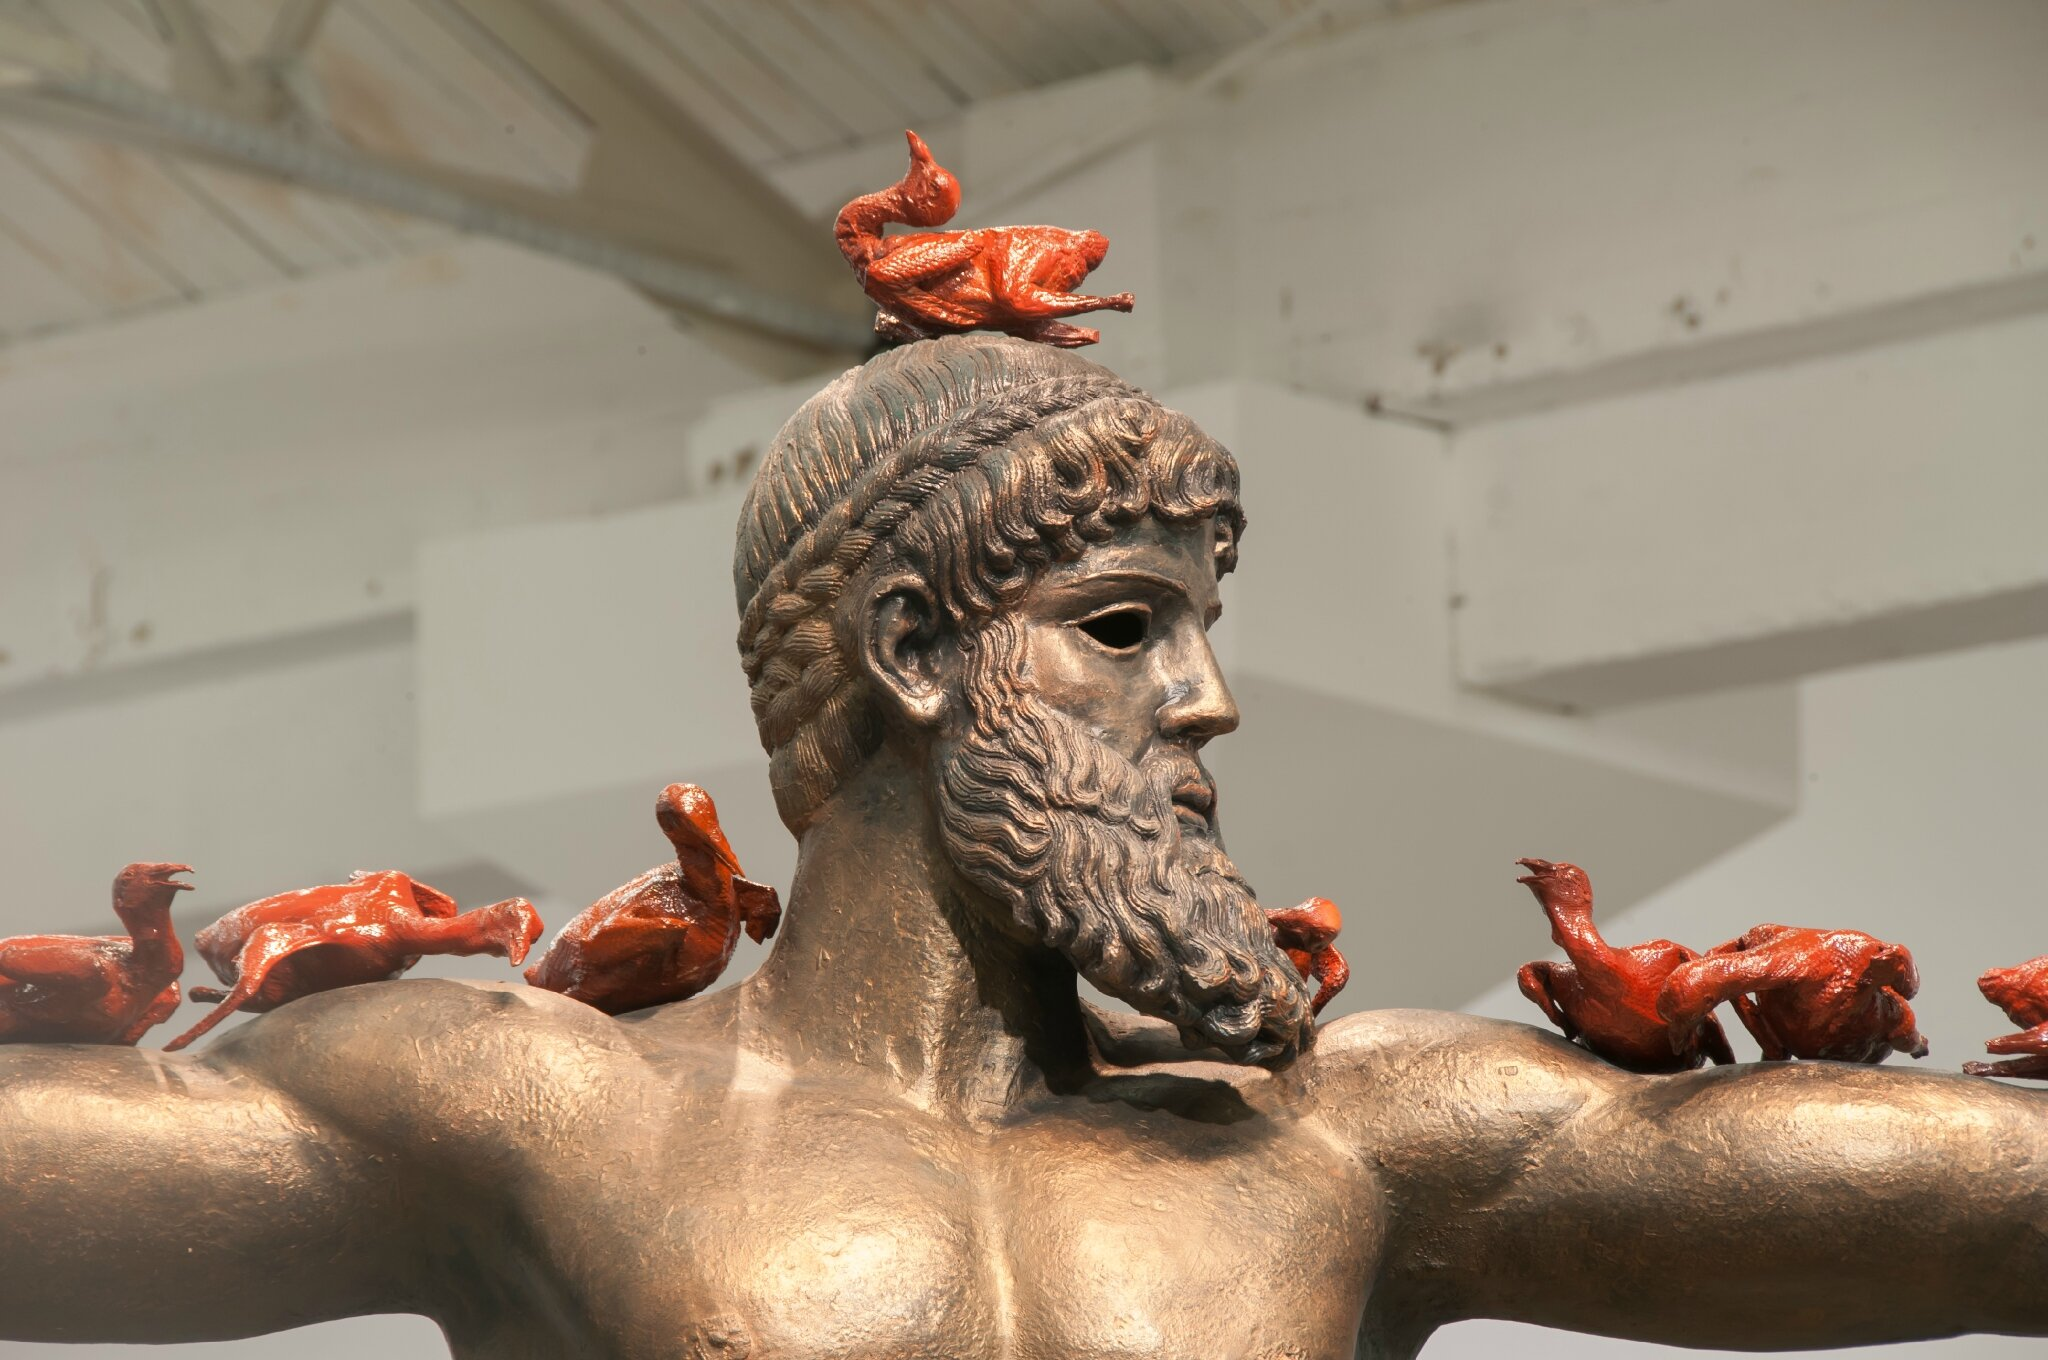 Kunsthaus Graz opens exhibition of works by Xu Zhen